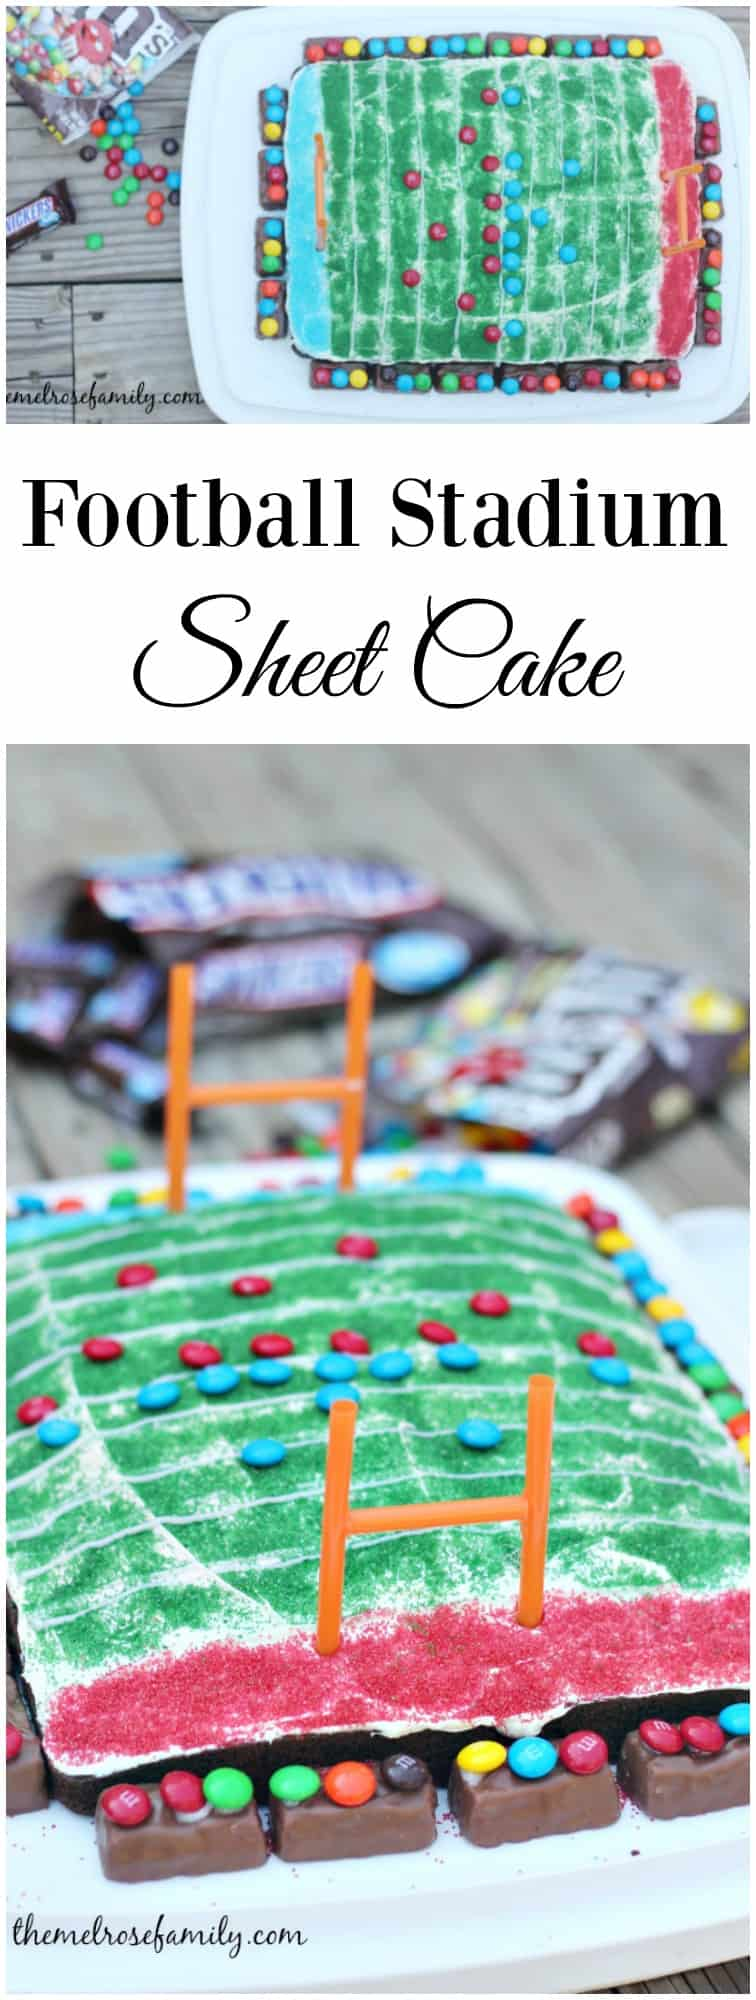 Are you ready for game day? You don't want to forget about dessert and this Football Stadium Sheet Cake is perfect!